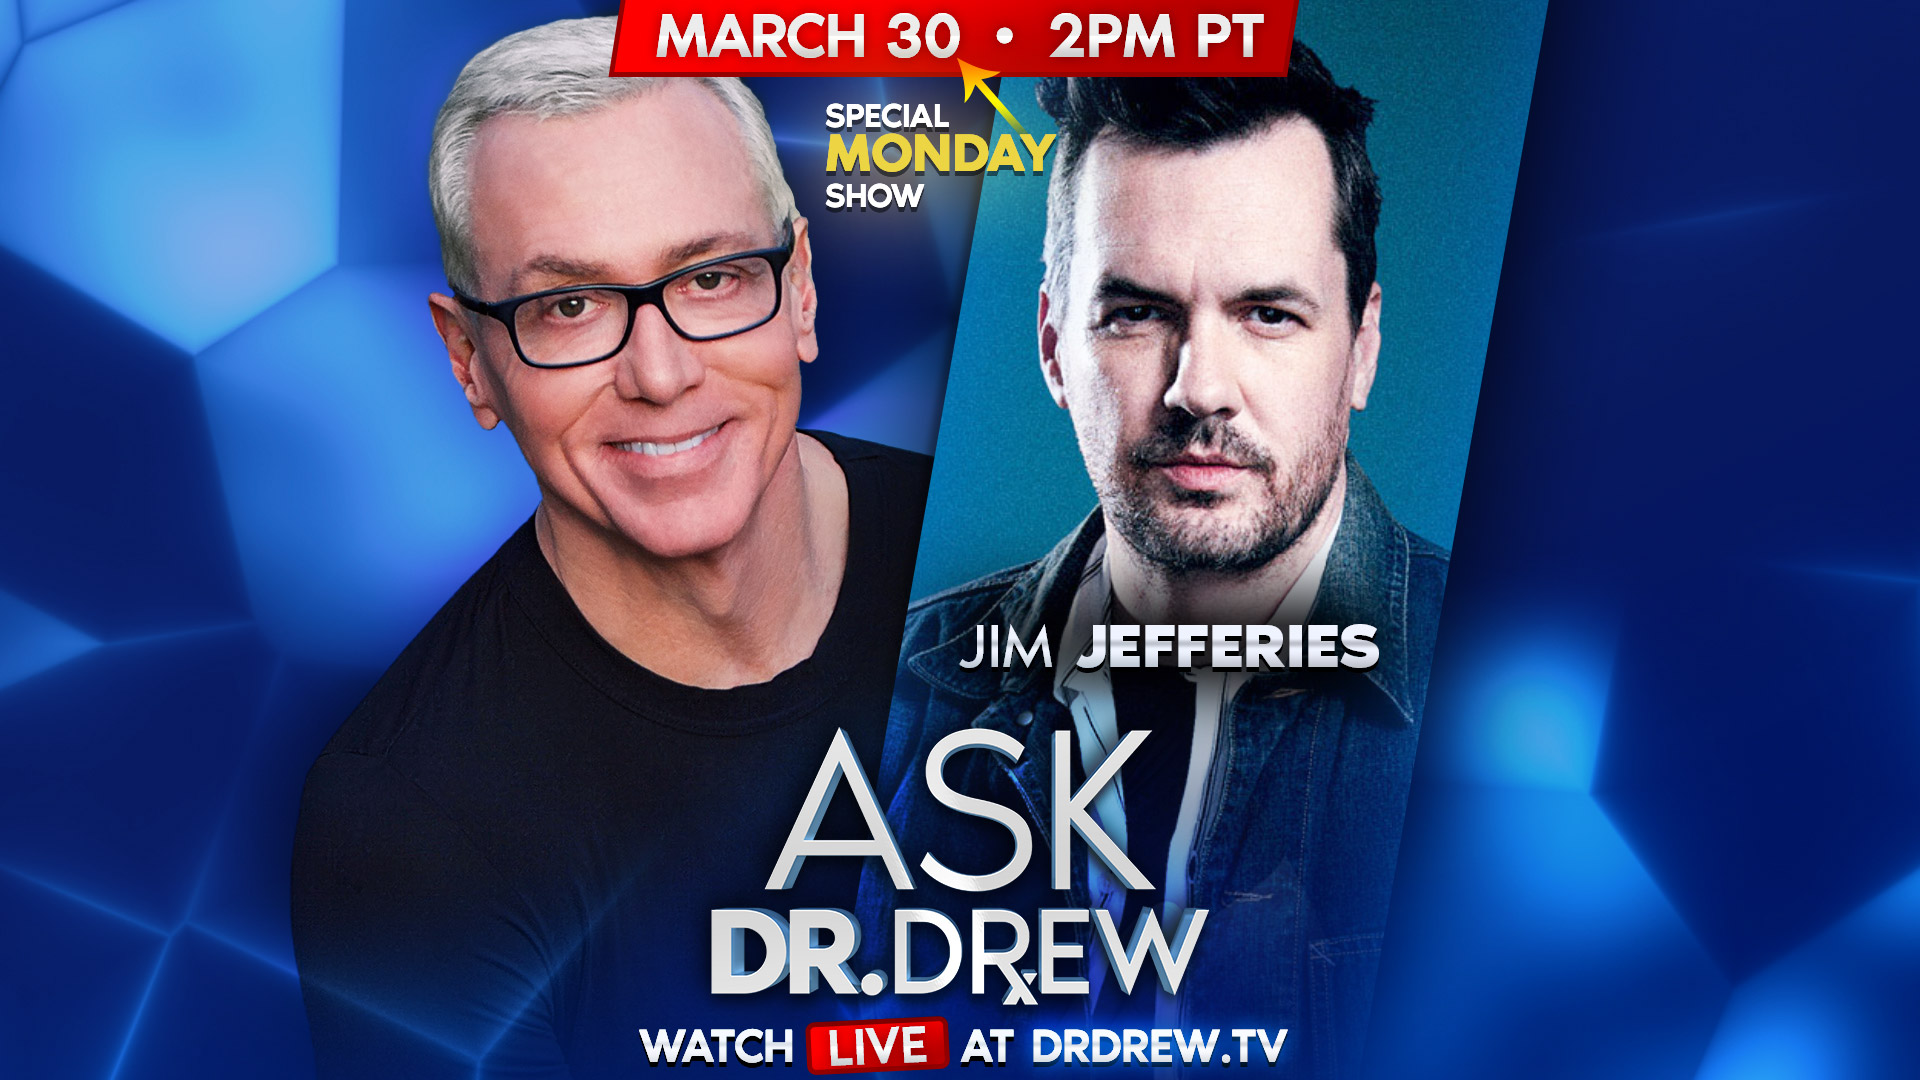 March 30 at 2pm PT: Ask Dr. Drew with Jim Jefferies